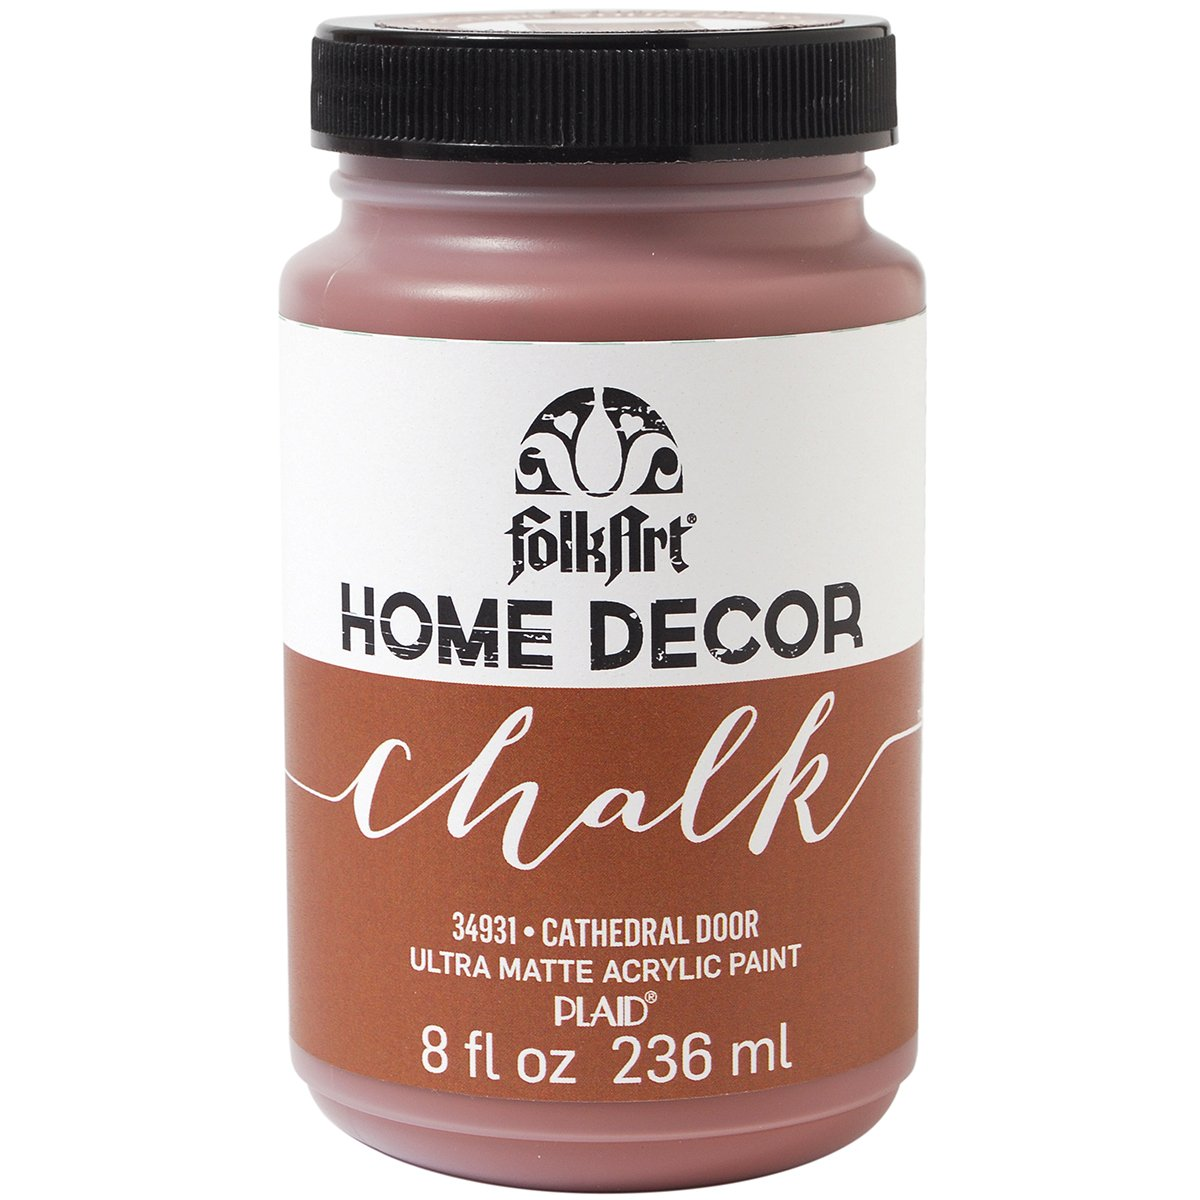 FolkArt Home Decor Chalk Furniture & Craft Paint in Assorted Colors (8-Ounce), 34161 Nautical Plaid Inc.